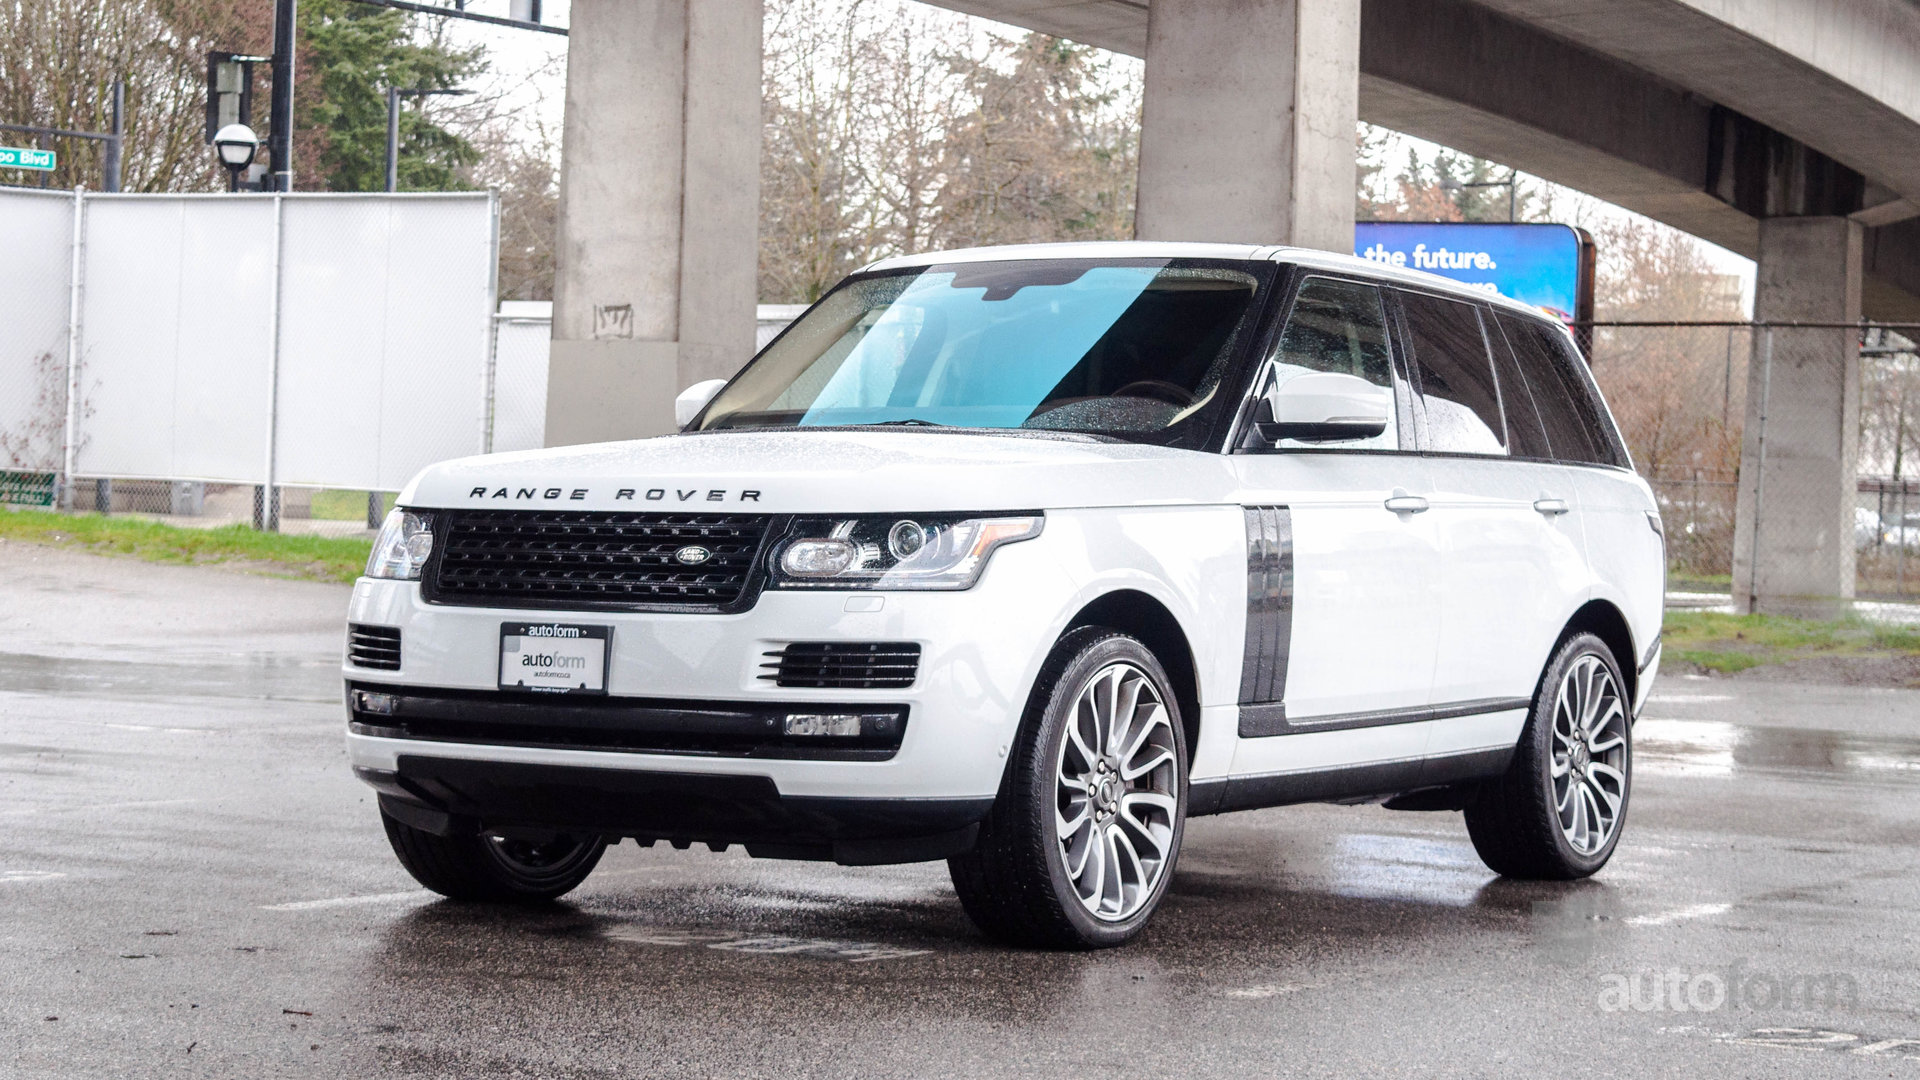 2014 land rover range rover autobiography supercharged for for Land rover tarbes garage moderne